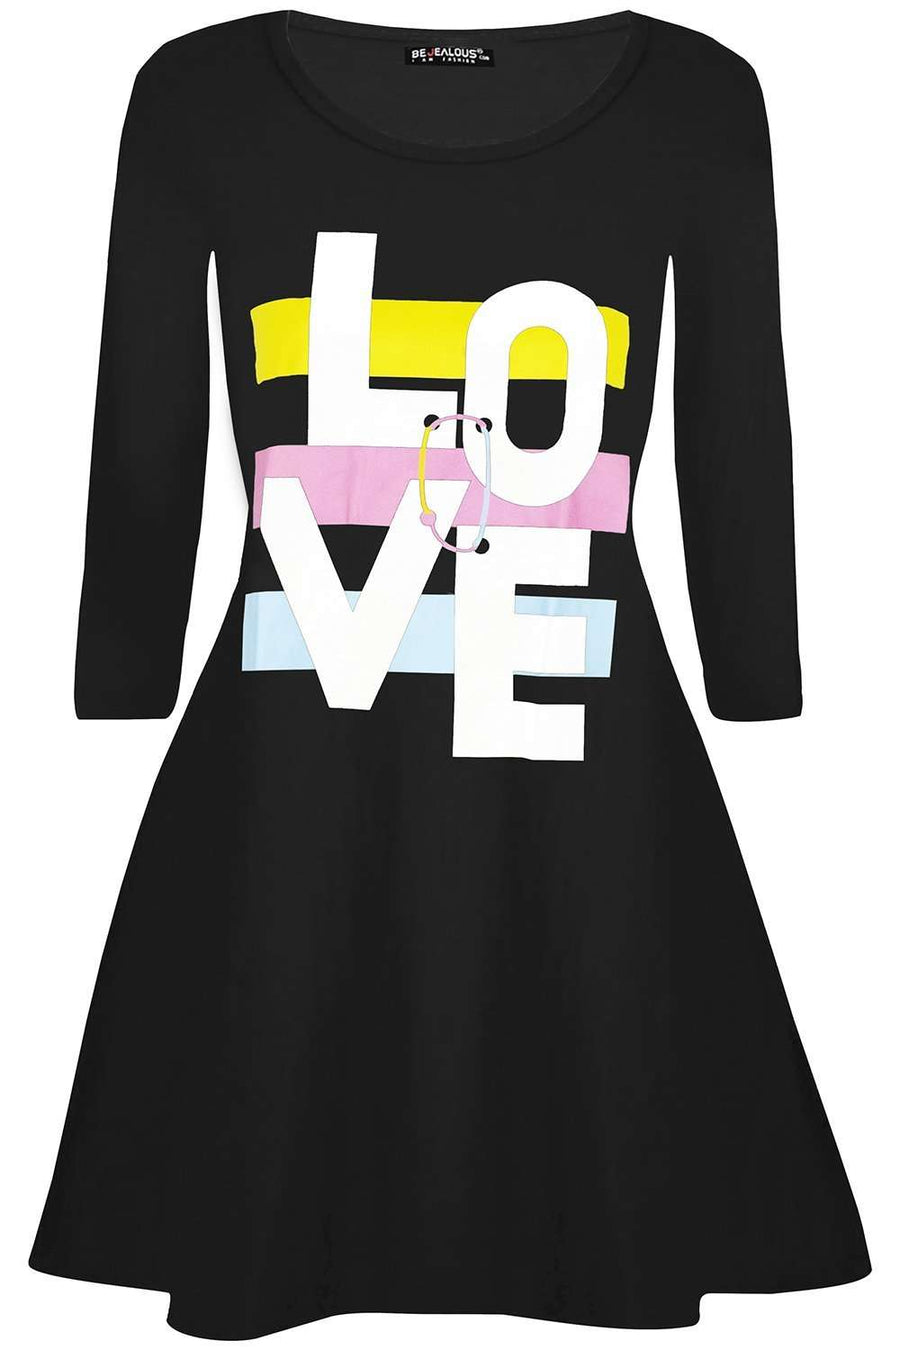 Ariana Love Slogan Print Swing Dress - bejealous-com